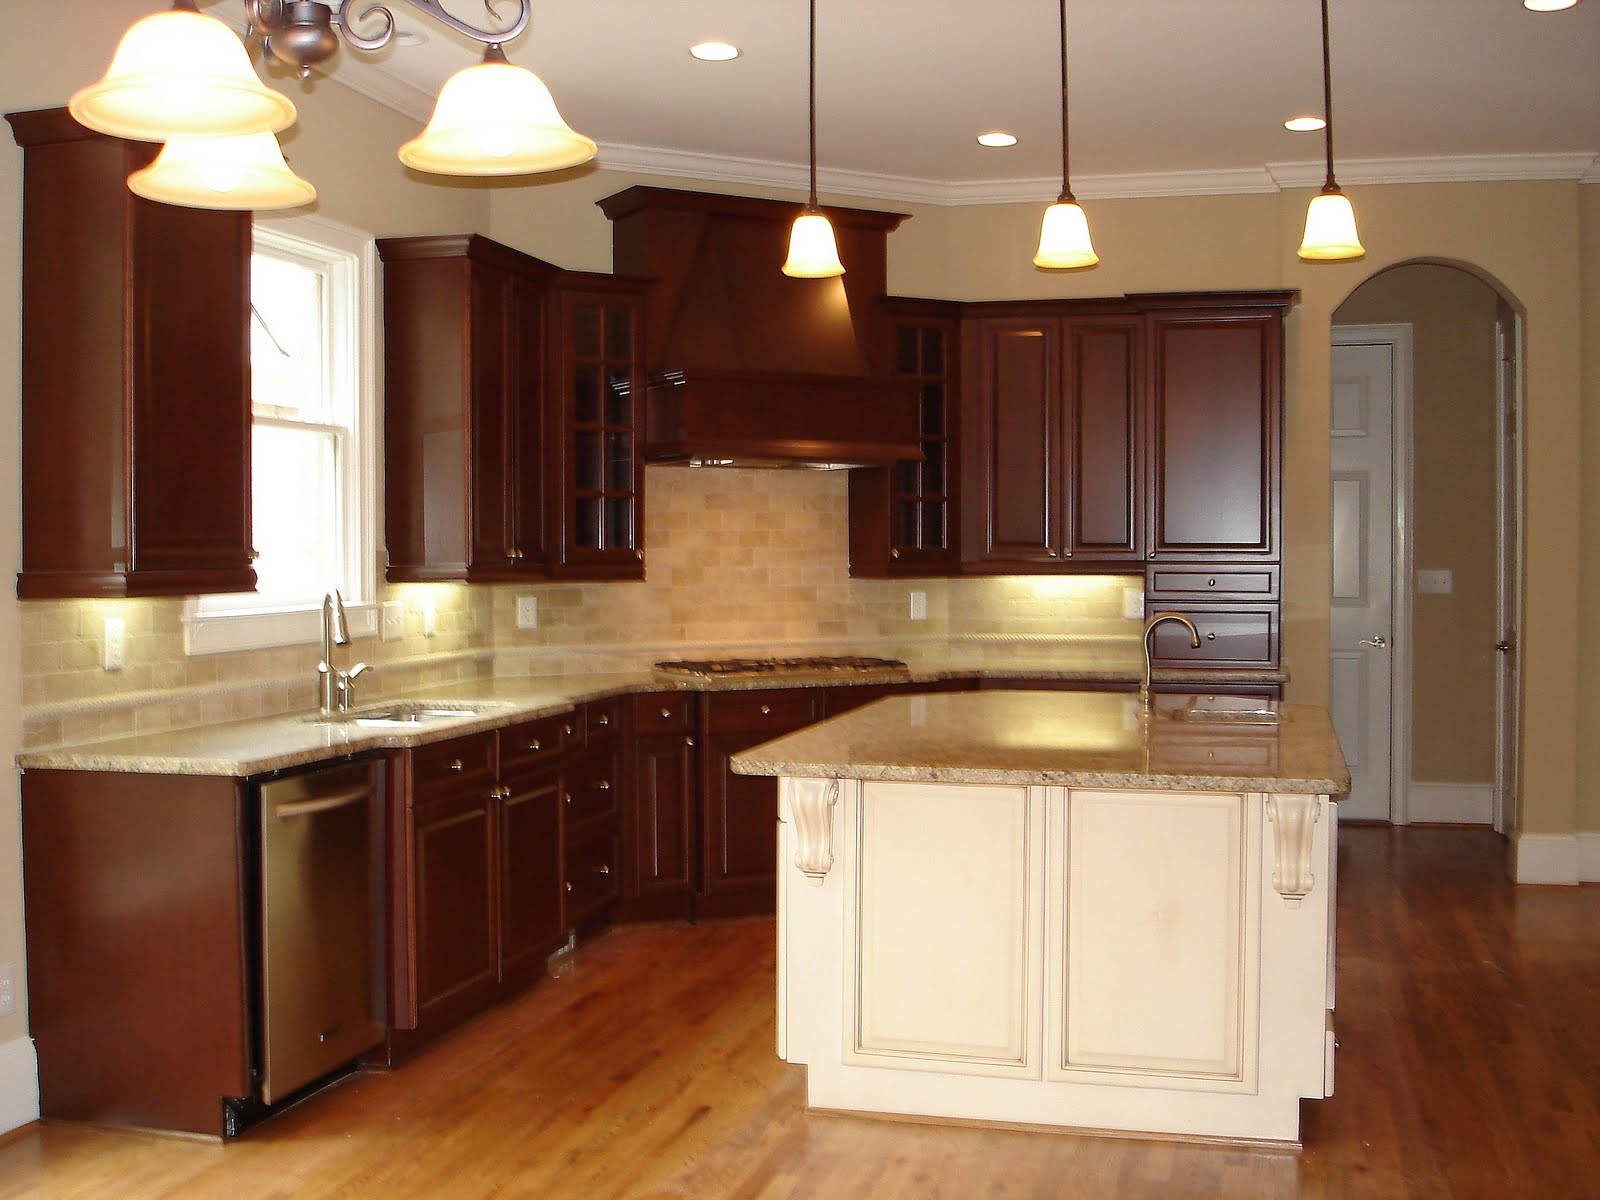 Babcock Roofing Pros Can Help: Building your Dream Kitchen